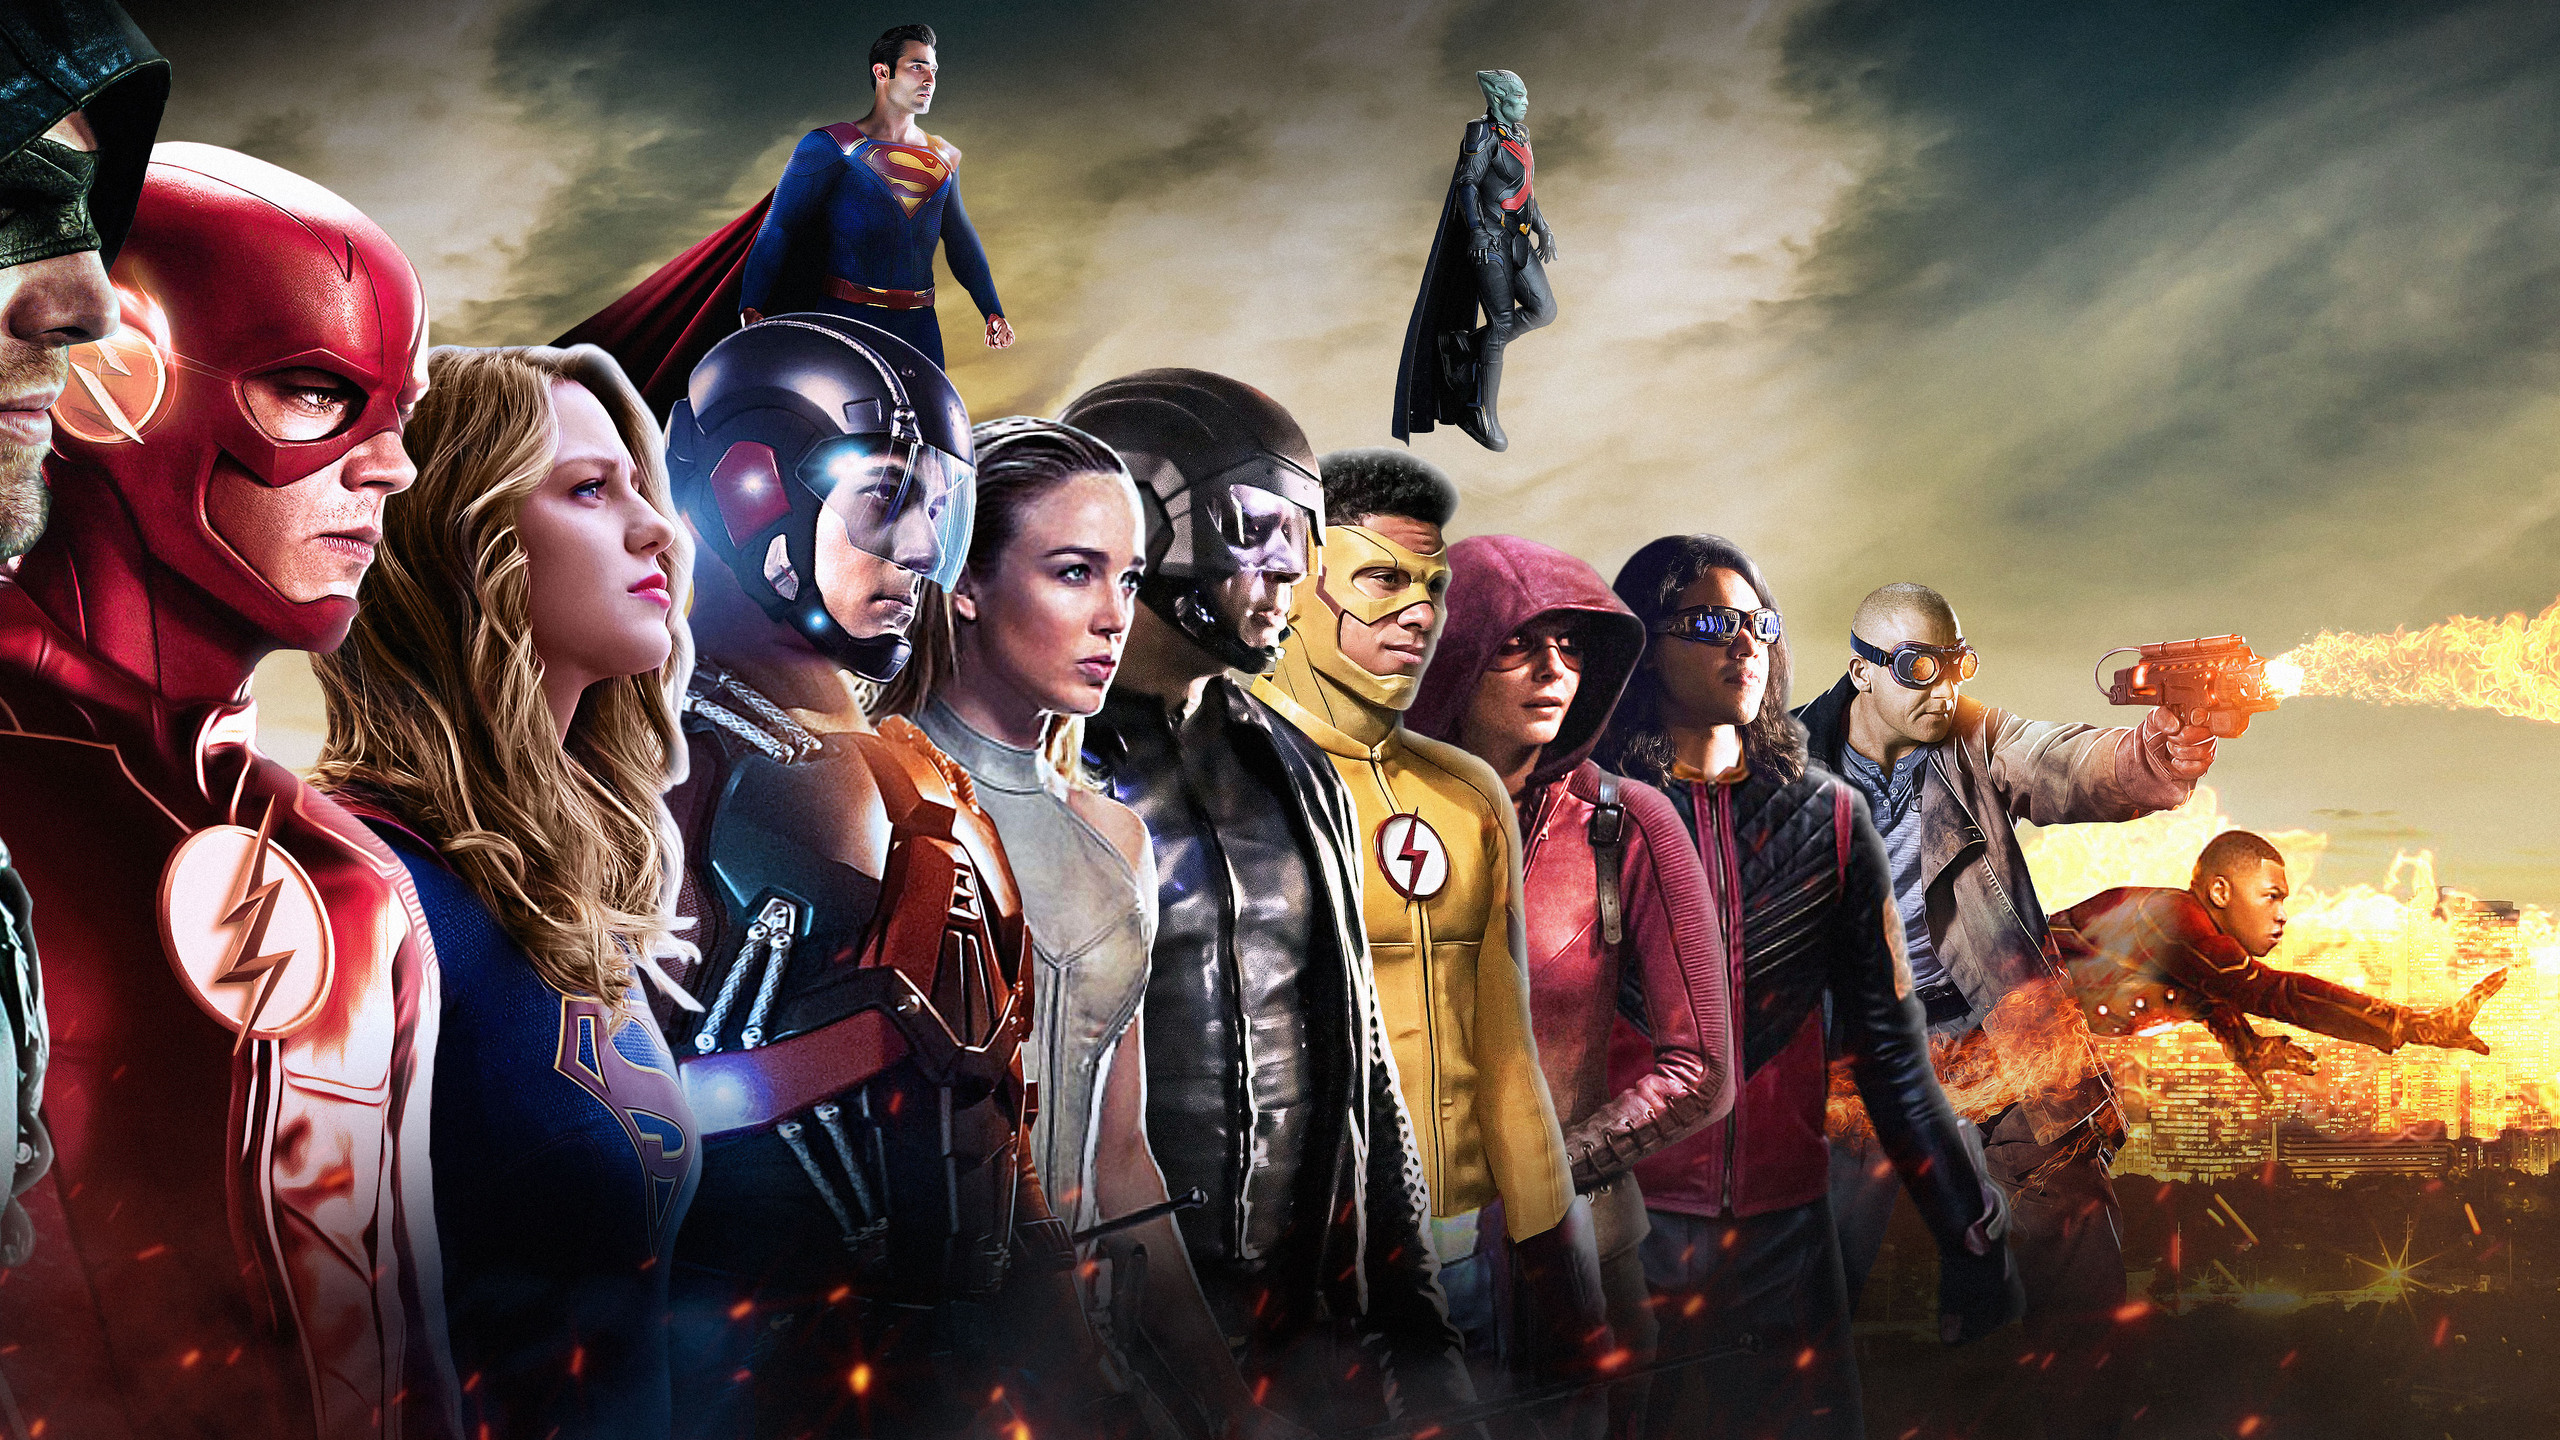 2560x1440 dc cw all superheroes 1440p resolution hd 4k wallpapers images backgrounds photos. Black Bedroom Furniture Sets. Home Design Ideas